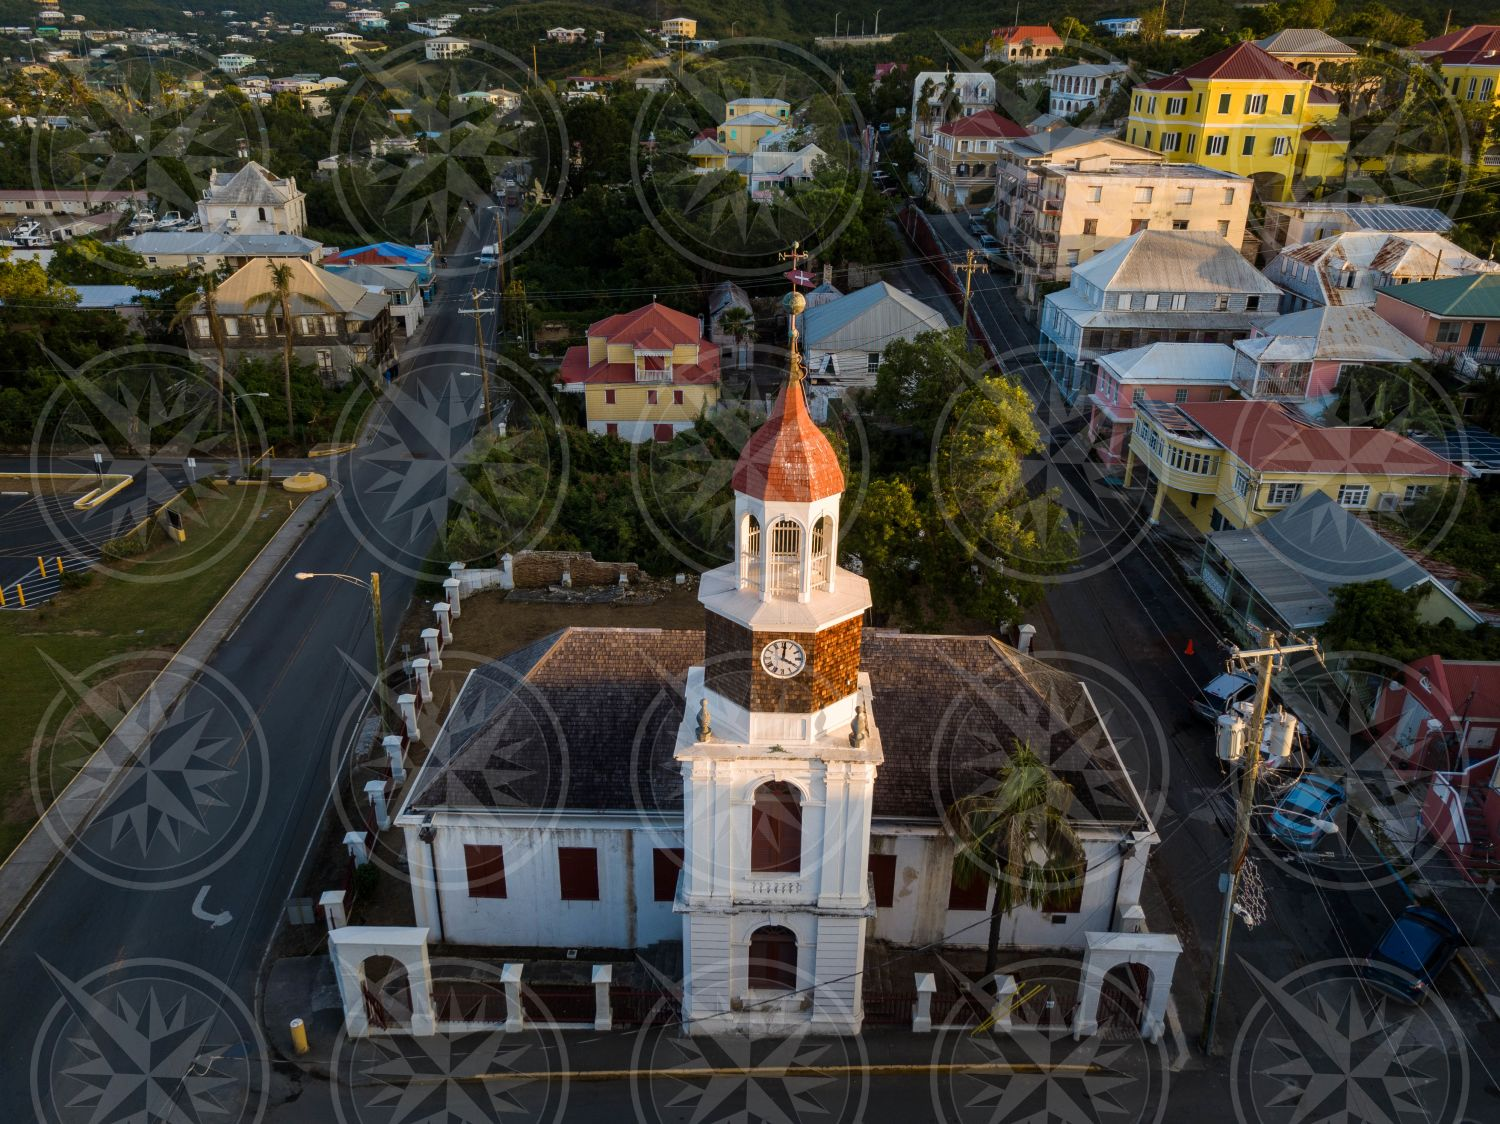 Steeple Building downtown Christiansted, St. Croix